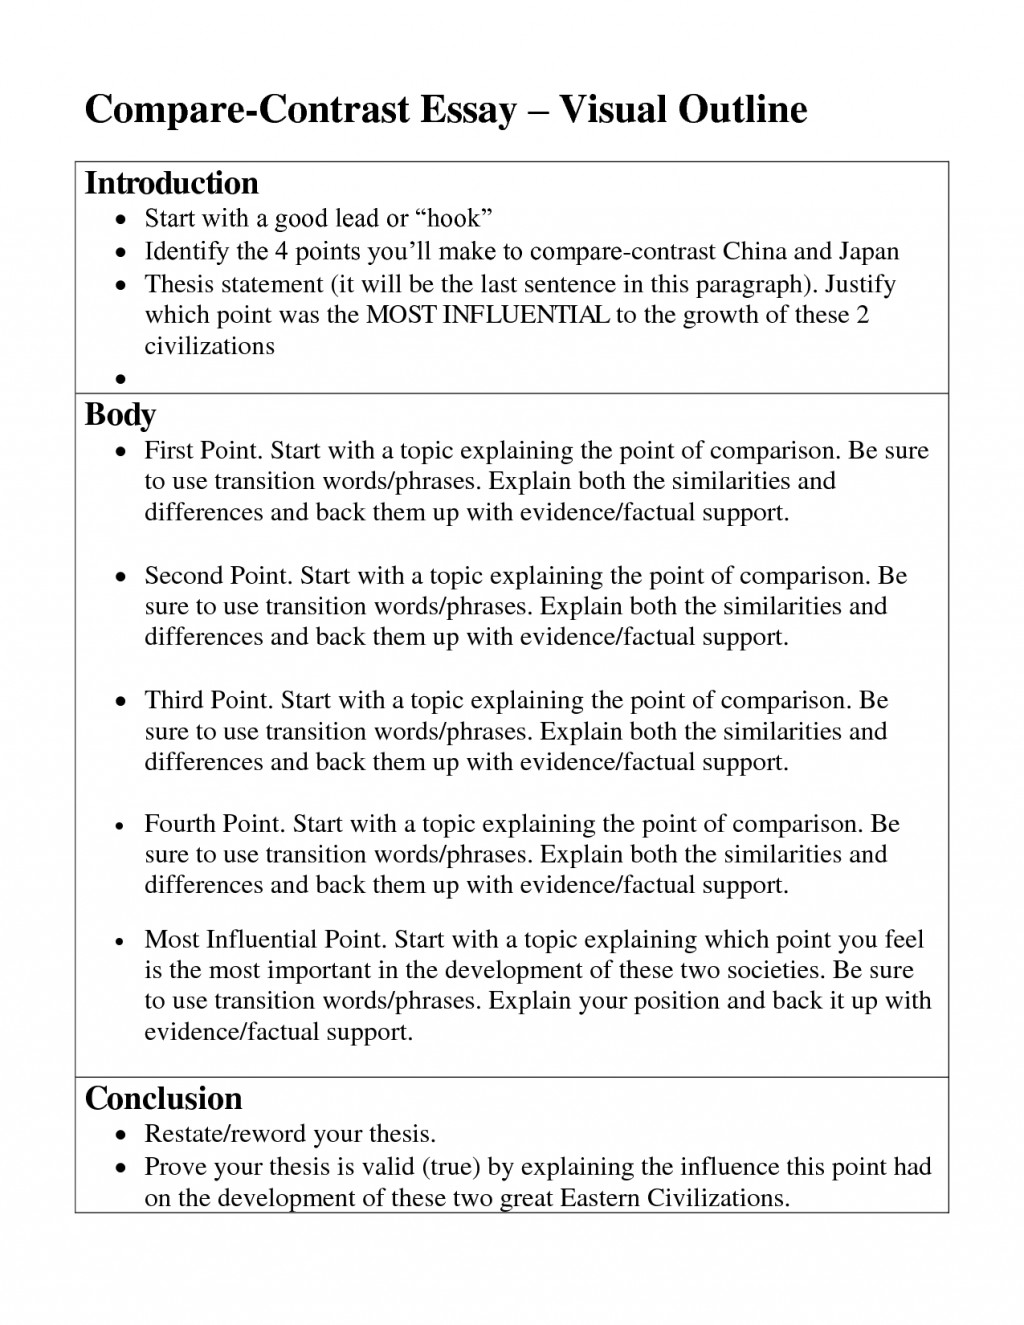 005 How To Write Compare And Contrast Essay Outstanding A Format Block Conclusion Paragraph For Examples Large